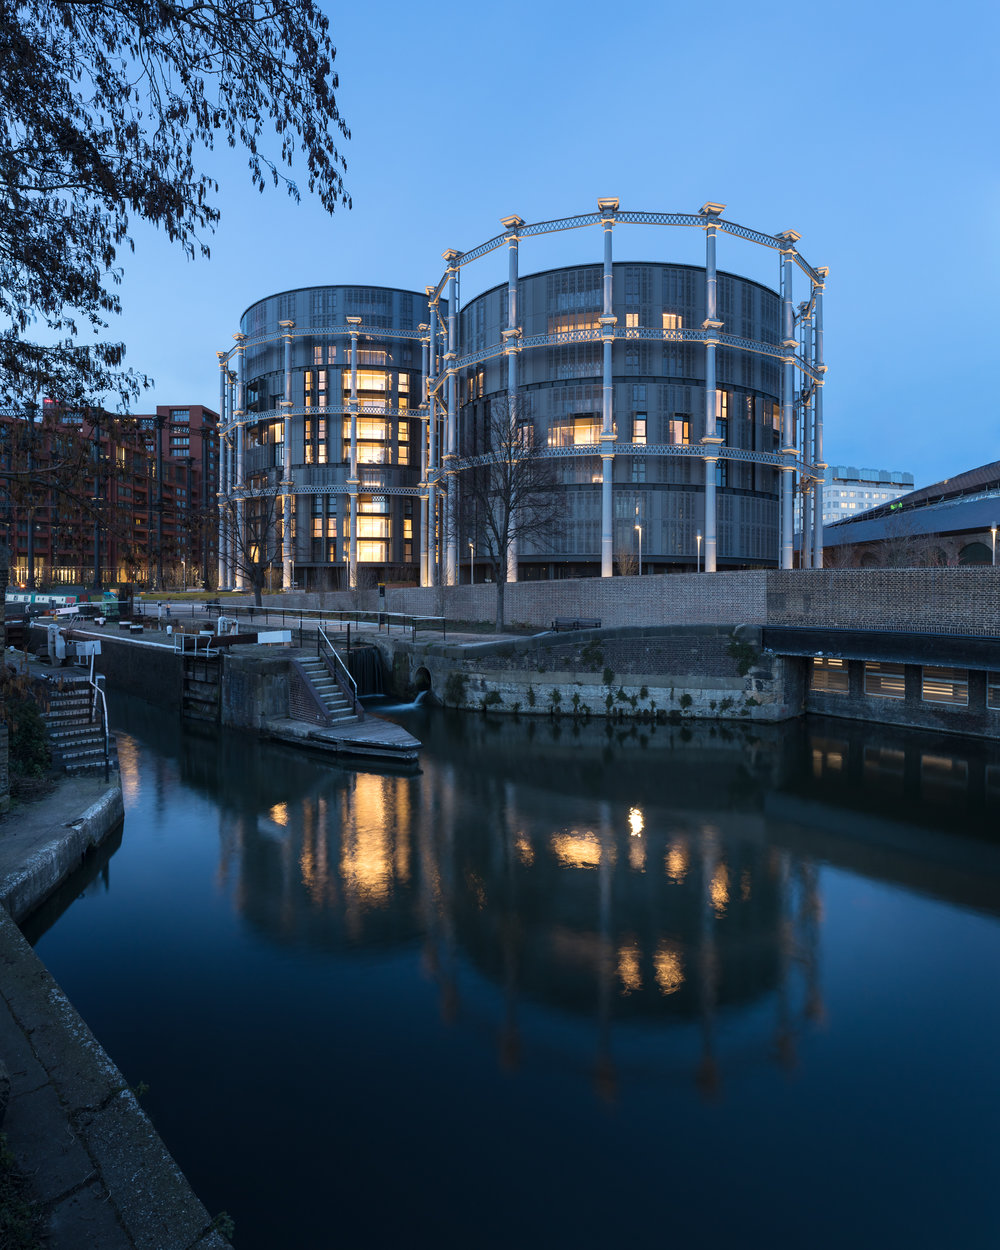 Pano_9573_9575-Edit - 200318_Wilkinson_Eyre_Gasholders - Website.jpg